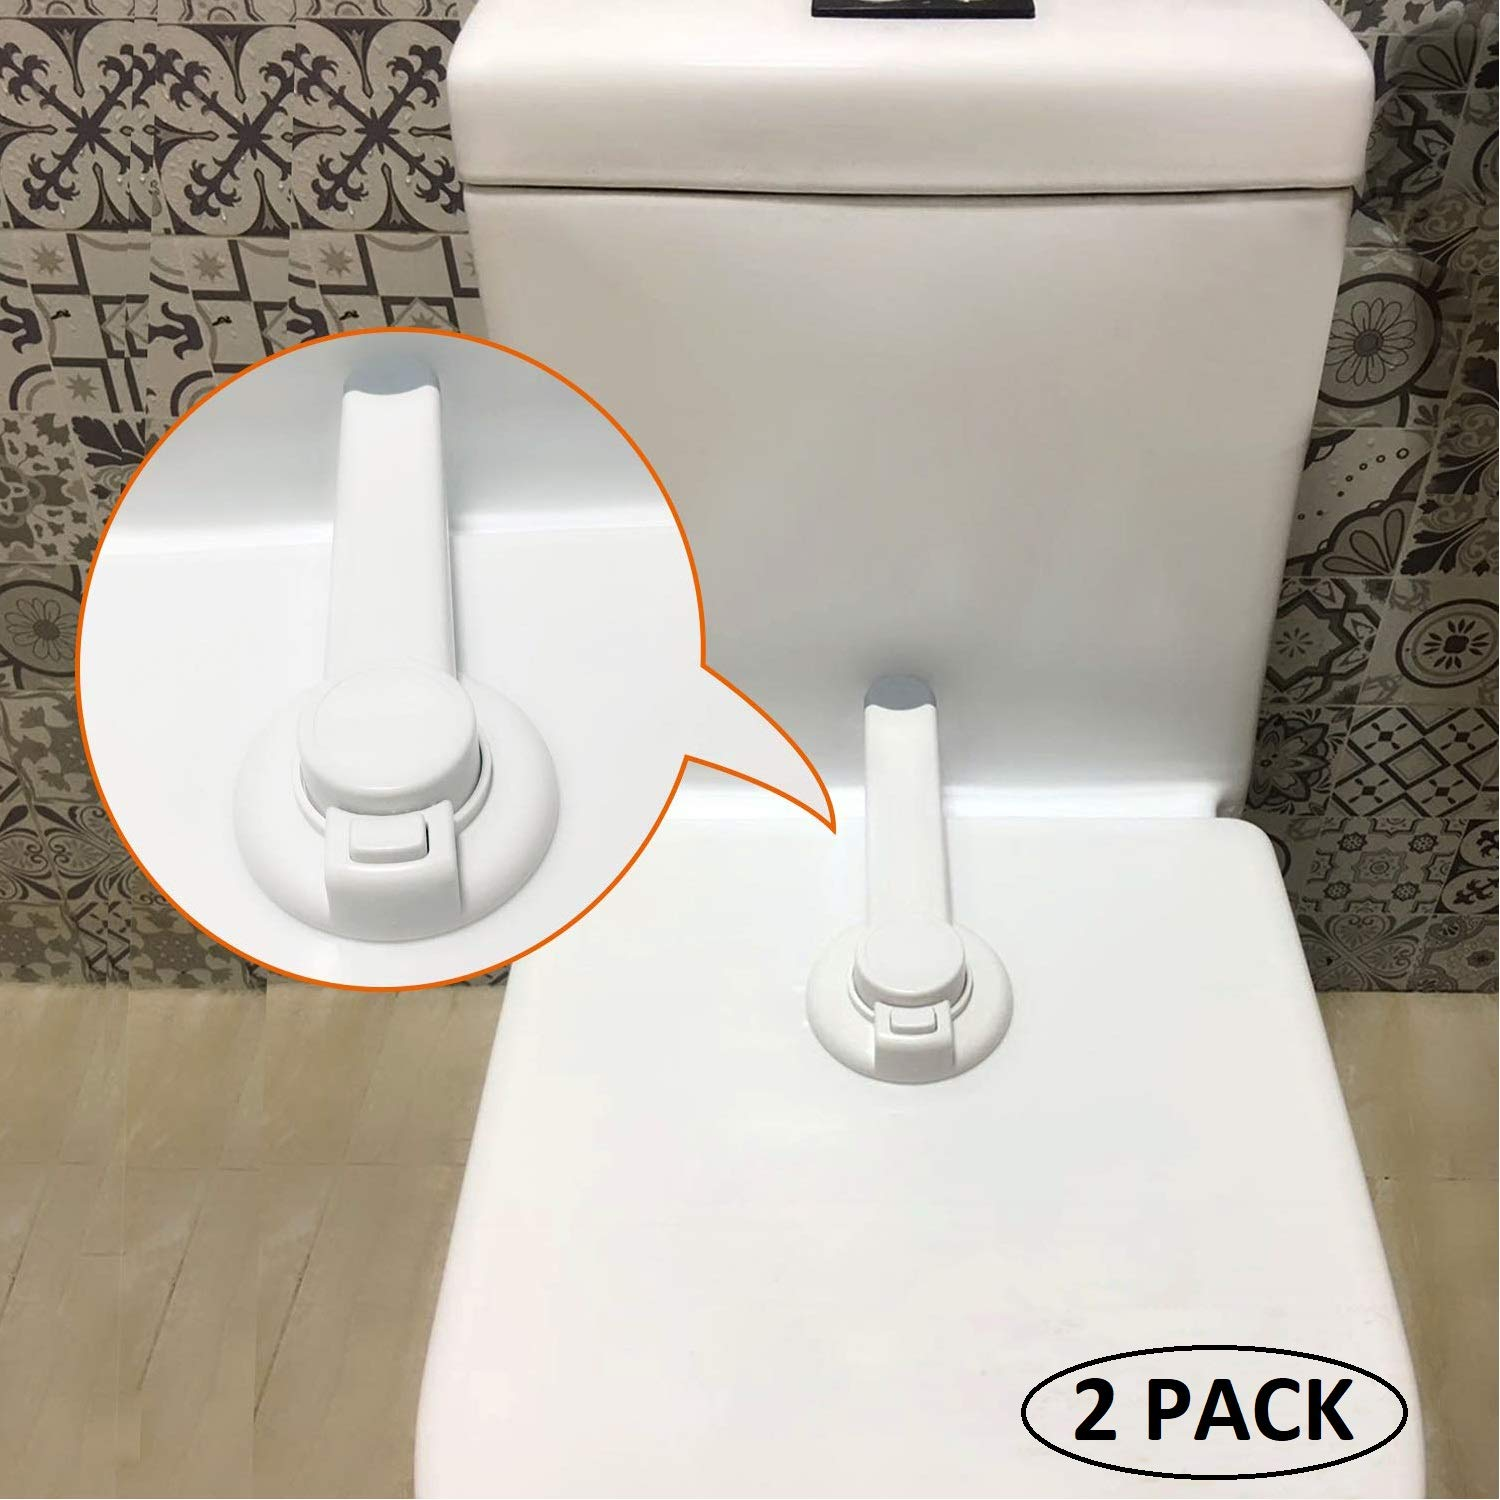 MILIVIXAY Baby Proof Toilet Seat Lock Ideal Toilet Locks Child Safety Toilet Seat Lid Lock for Baby Bathroom Safety Toilet Latch Fits Most Toilets